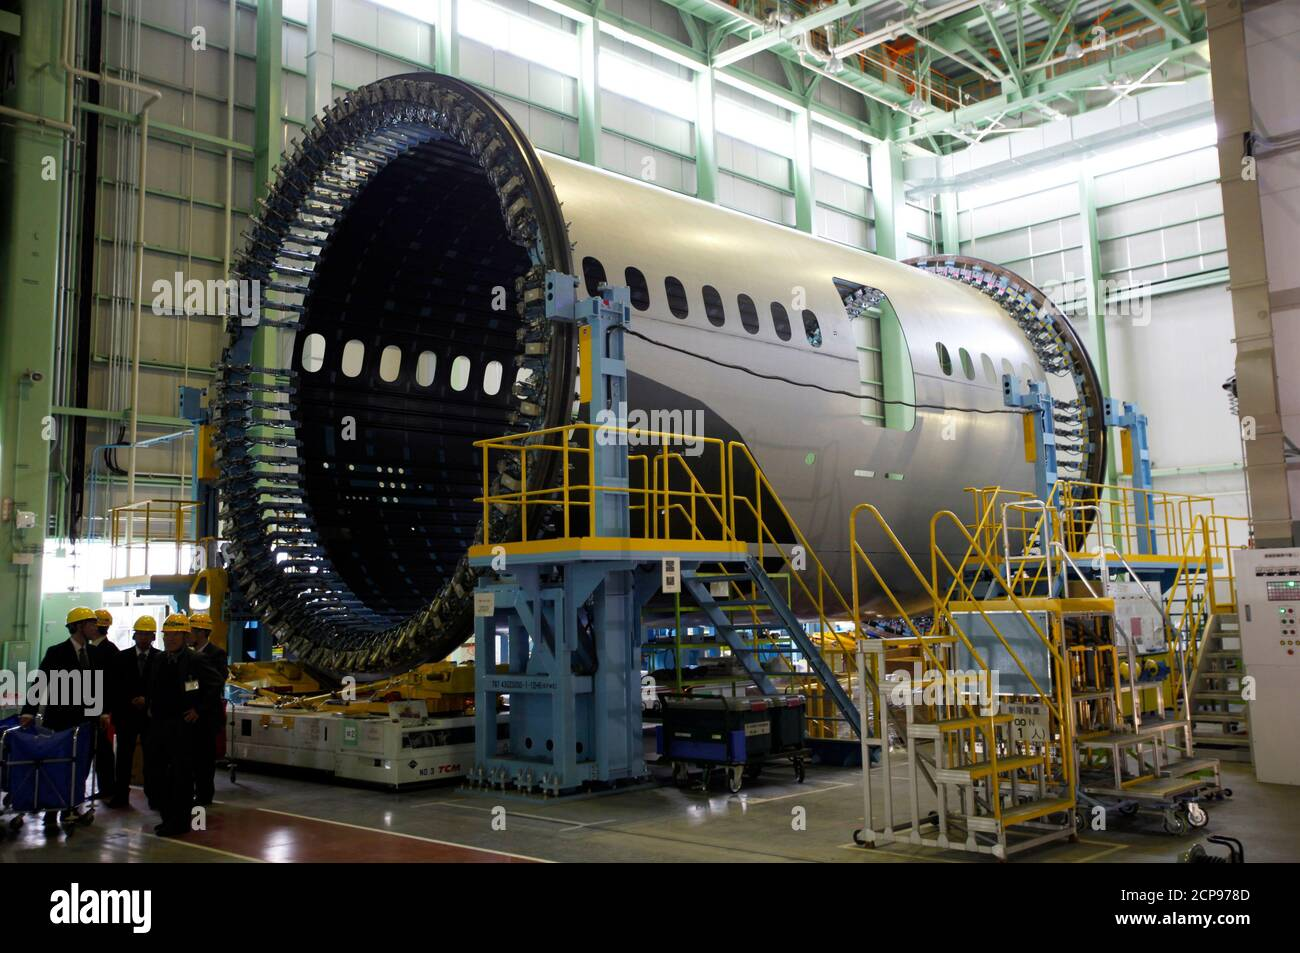 A forward fuselage of the Boeing 787 Dreamliner airplane is seen inside Kawasaki Heavy Industries' newly built manufacturing plant in Yatomi, central Japan, March 13, 2015. Kawasaki Heavy Industries Ltd opened a plant on Friday with an oversized kiln to bake and harden carbon fibre aircraft fuselage sections, giving it capacity to surpass Boeing Co's production targets for the 787 Dreamliner. The new 35 billion yen ($288.18 million) plant will build the forward fuselage for the Dreamliner, including the 330-seat stretch version slated for completion in 2017. REUTERS/Tim Kelly (JAPAN - Tags: TR Stock Photo